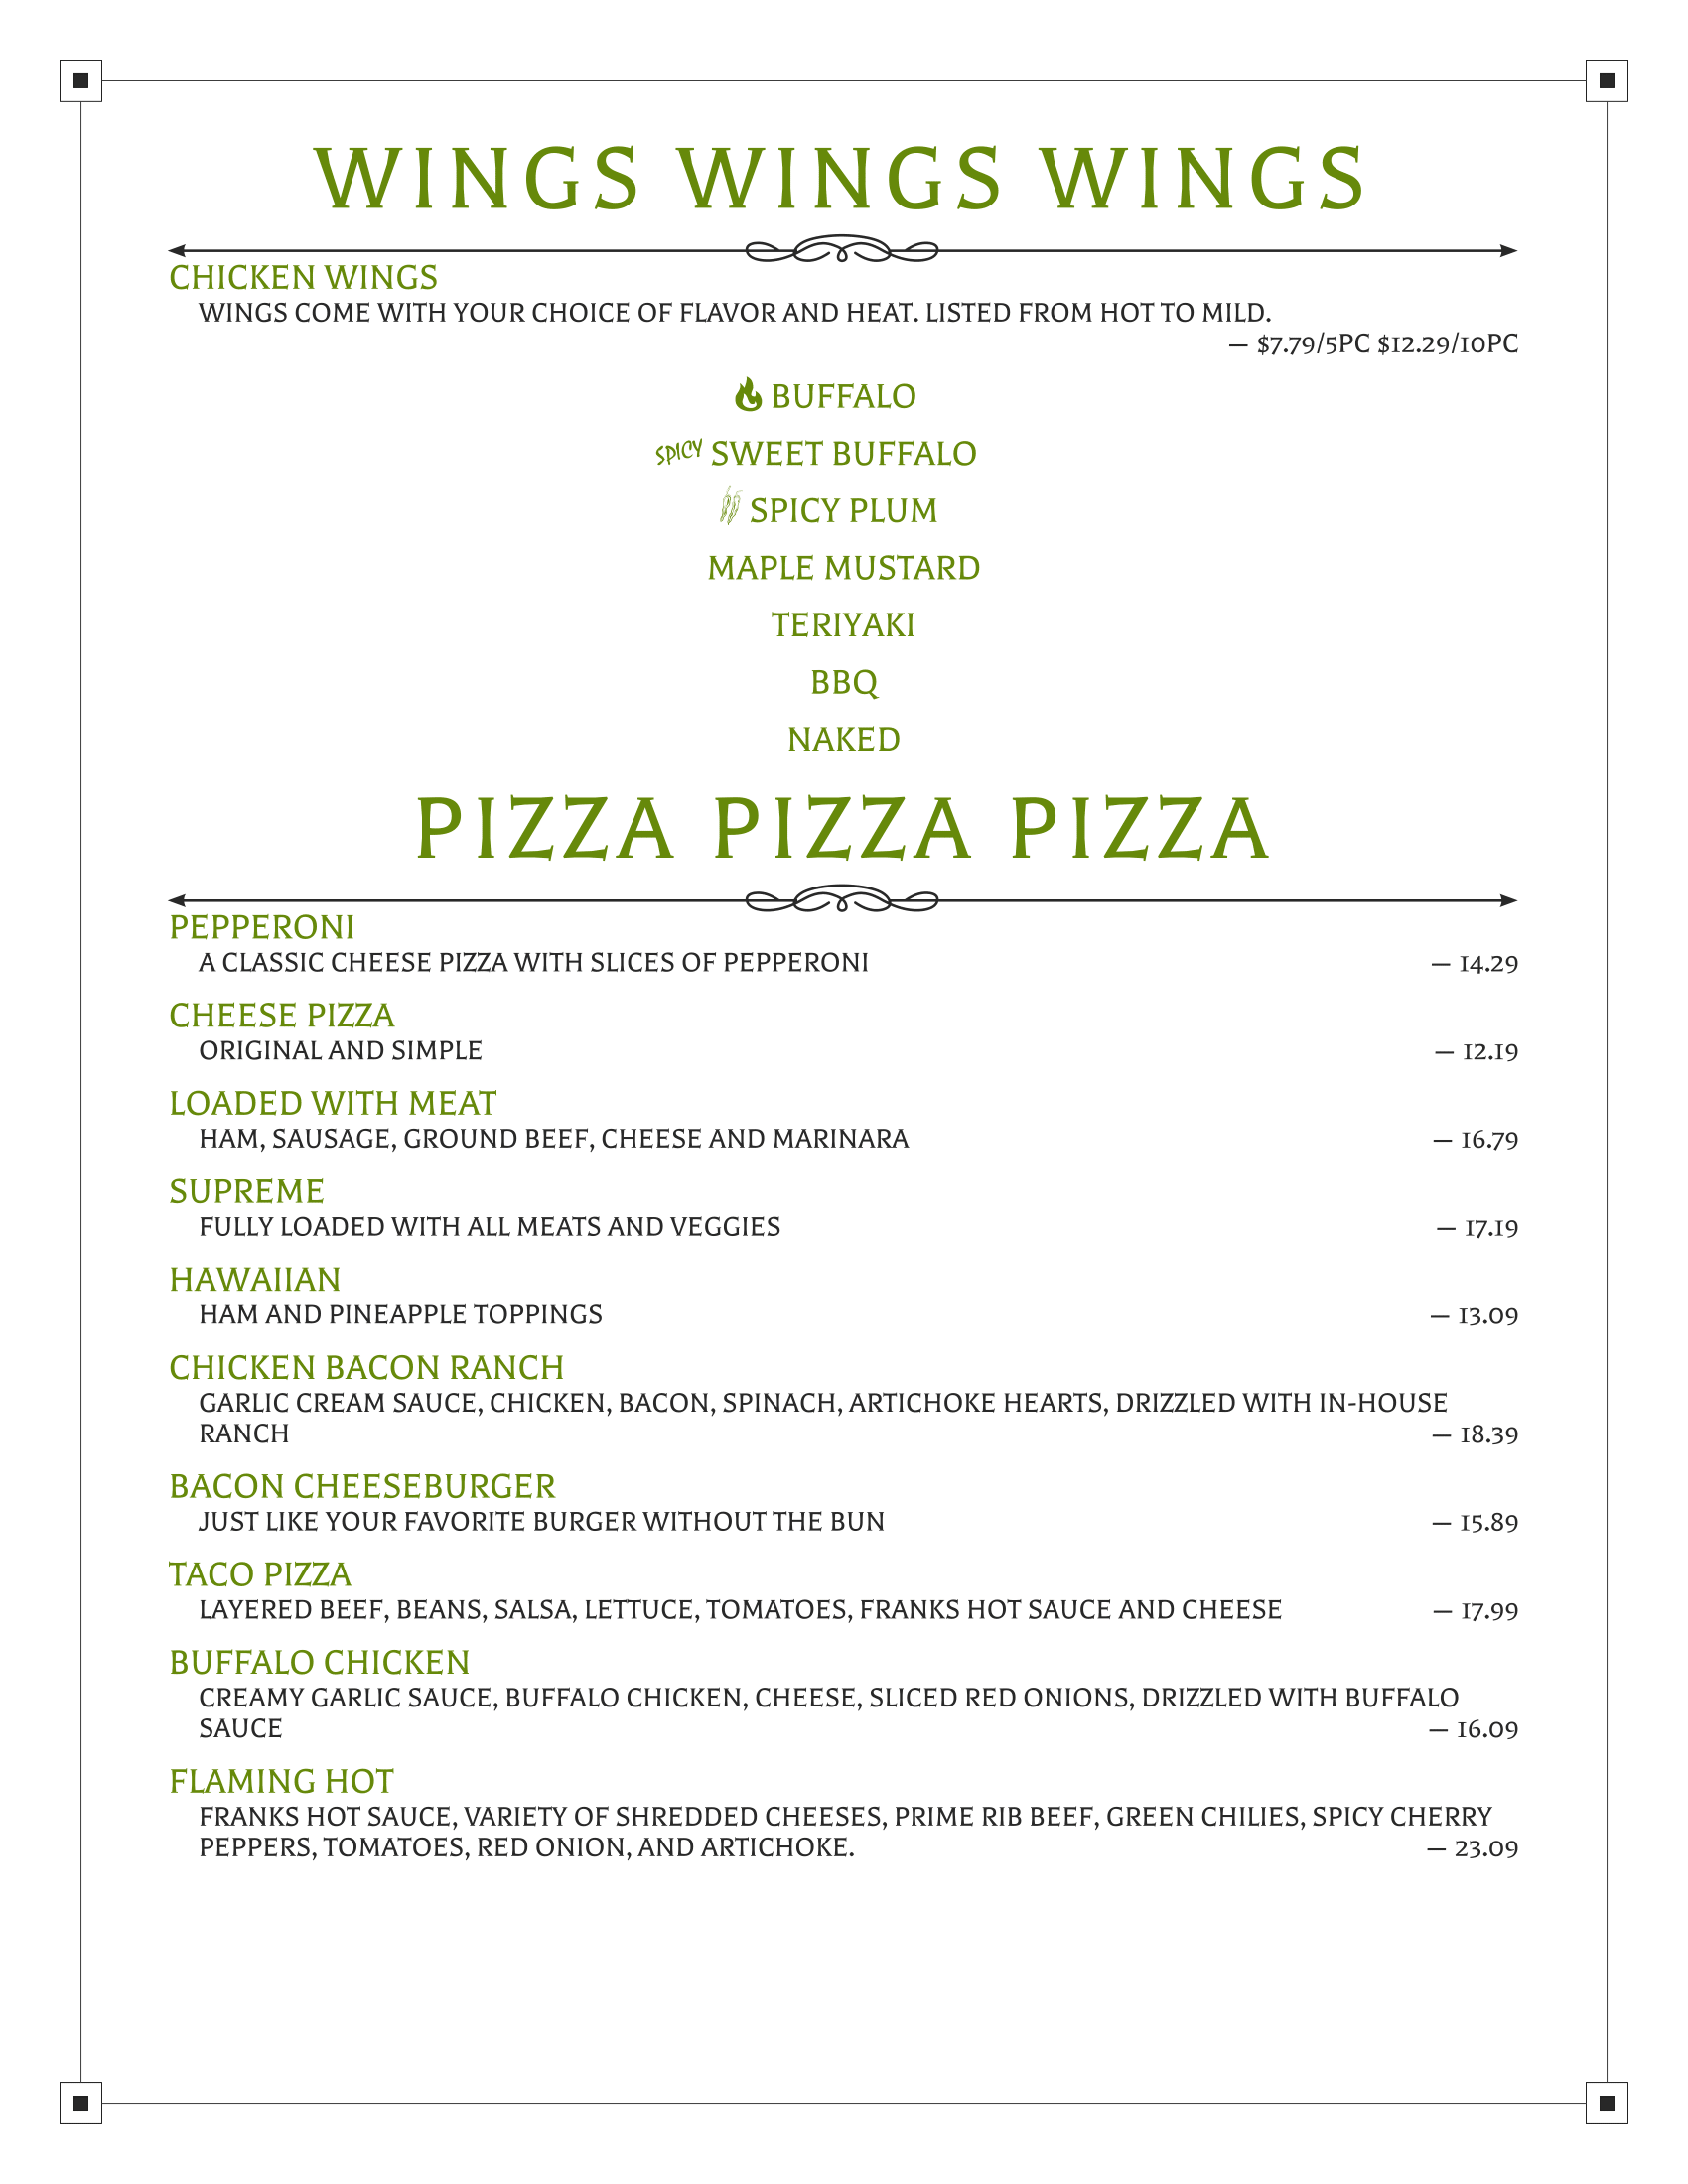 Badlands Menu